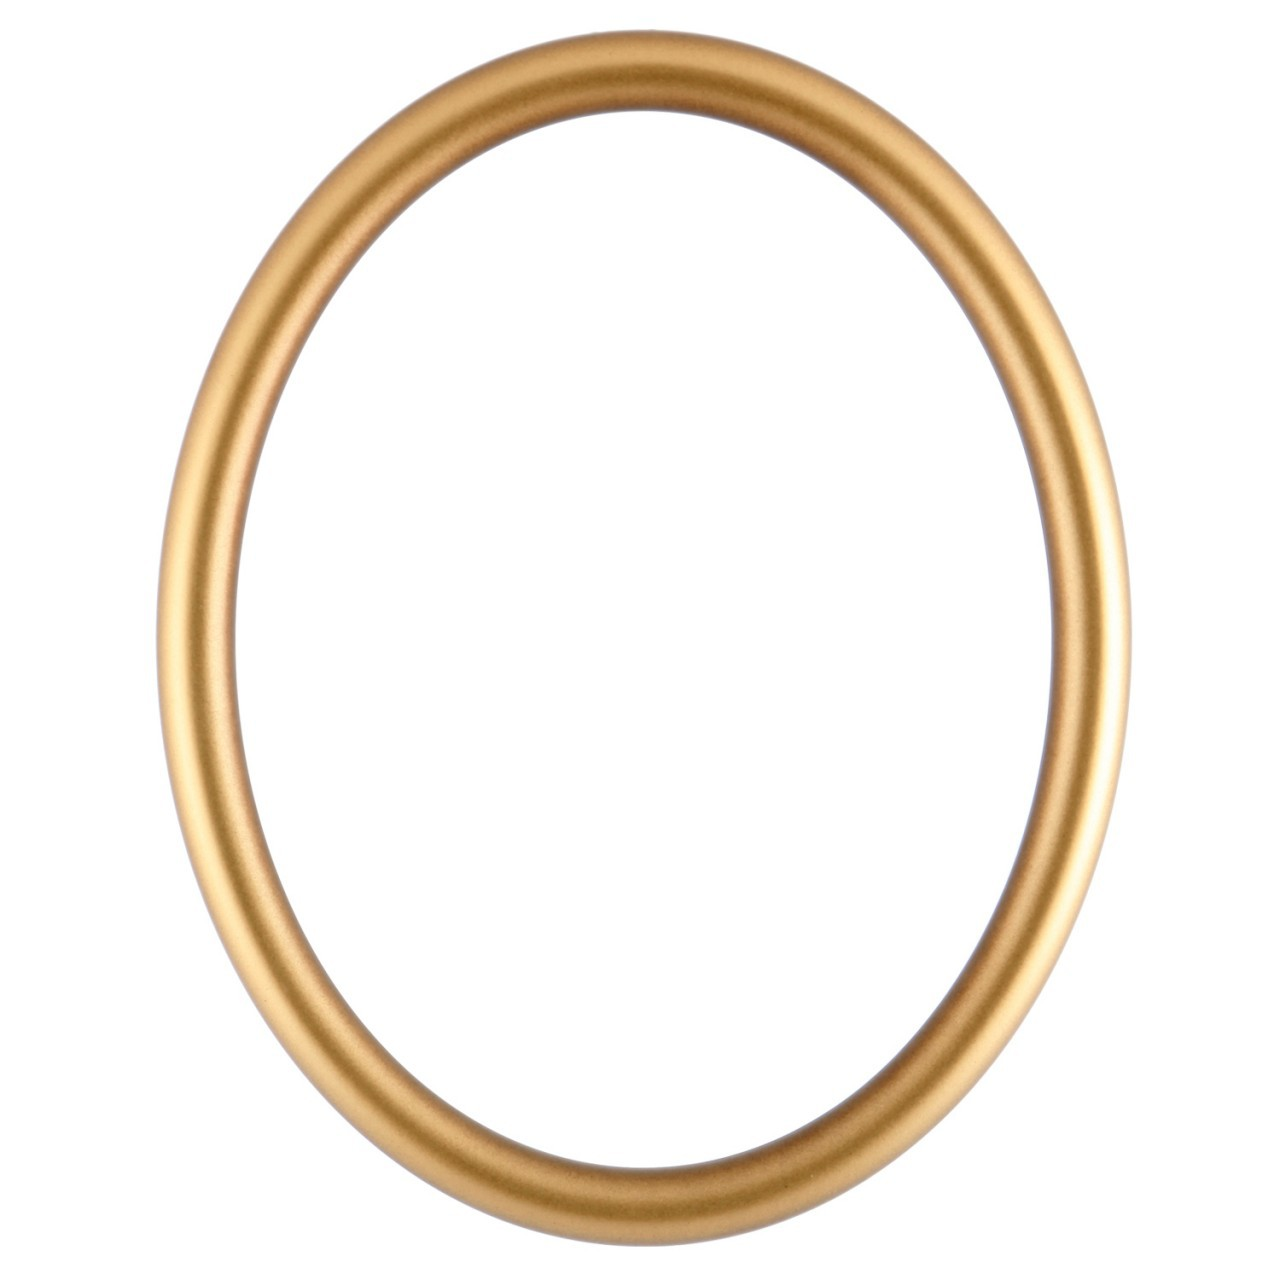 15 psd gold oval metal frames images gold picture frame template psd